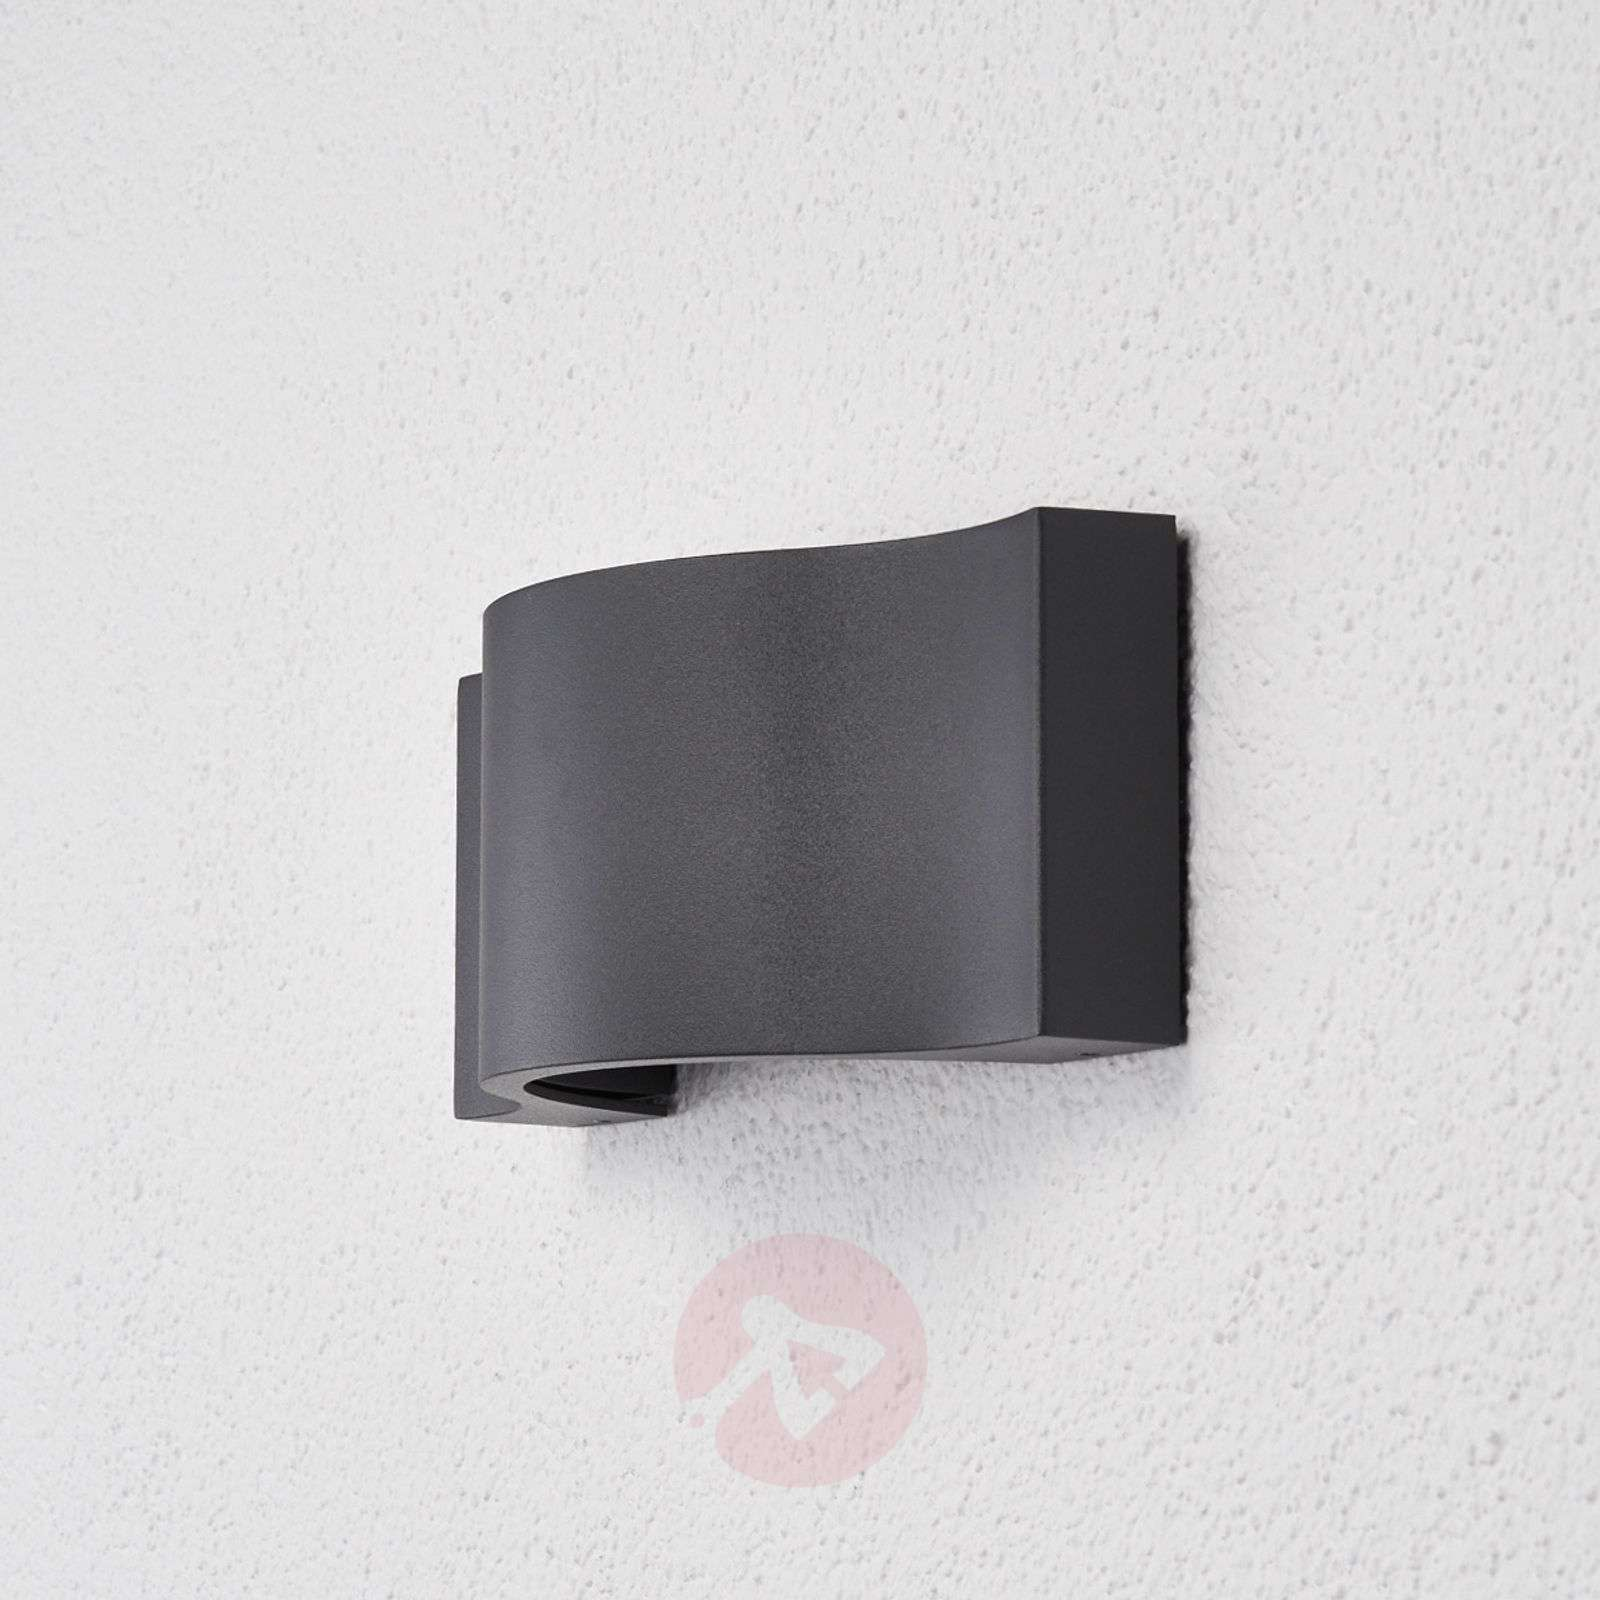 Applique parete Jace, elegante, LED, esterni-9616046-01